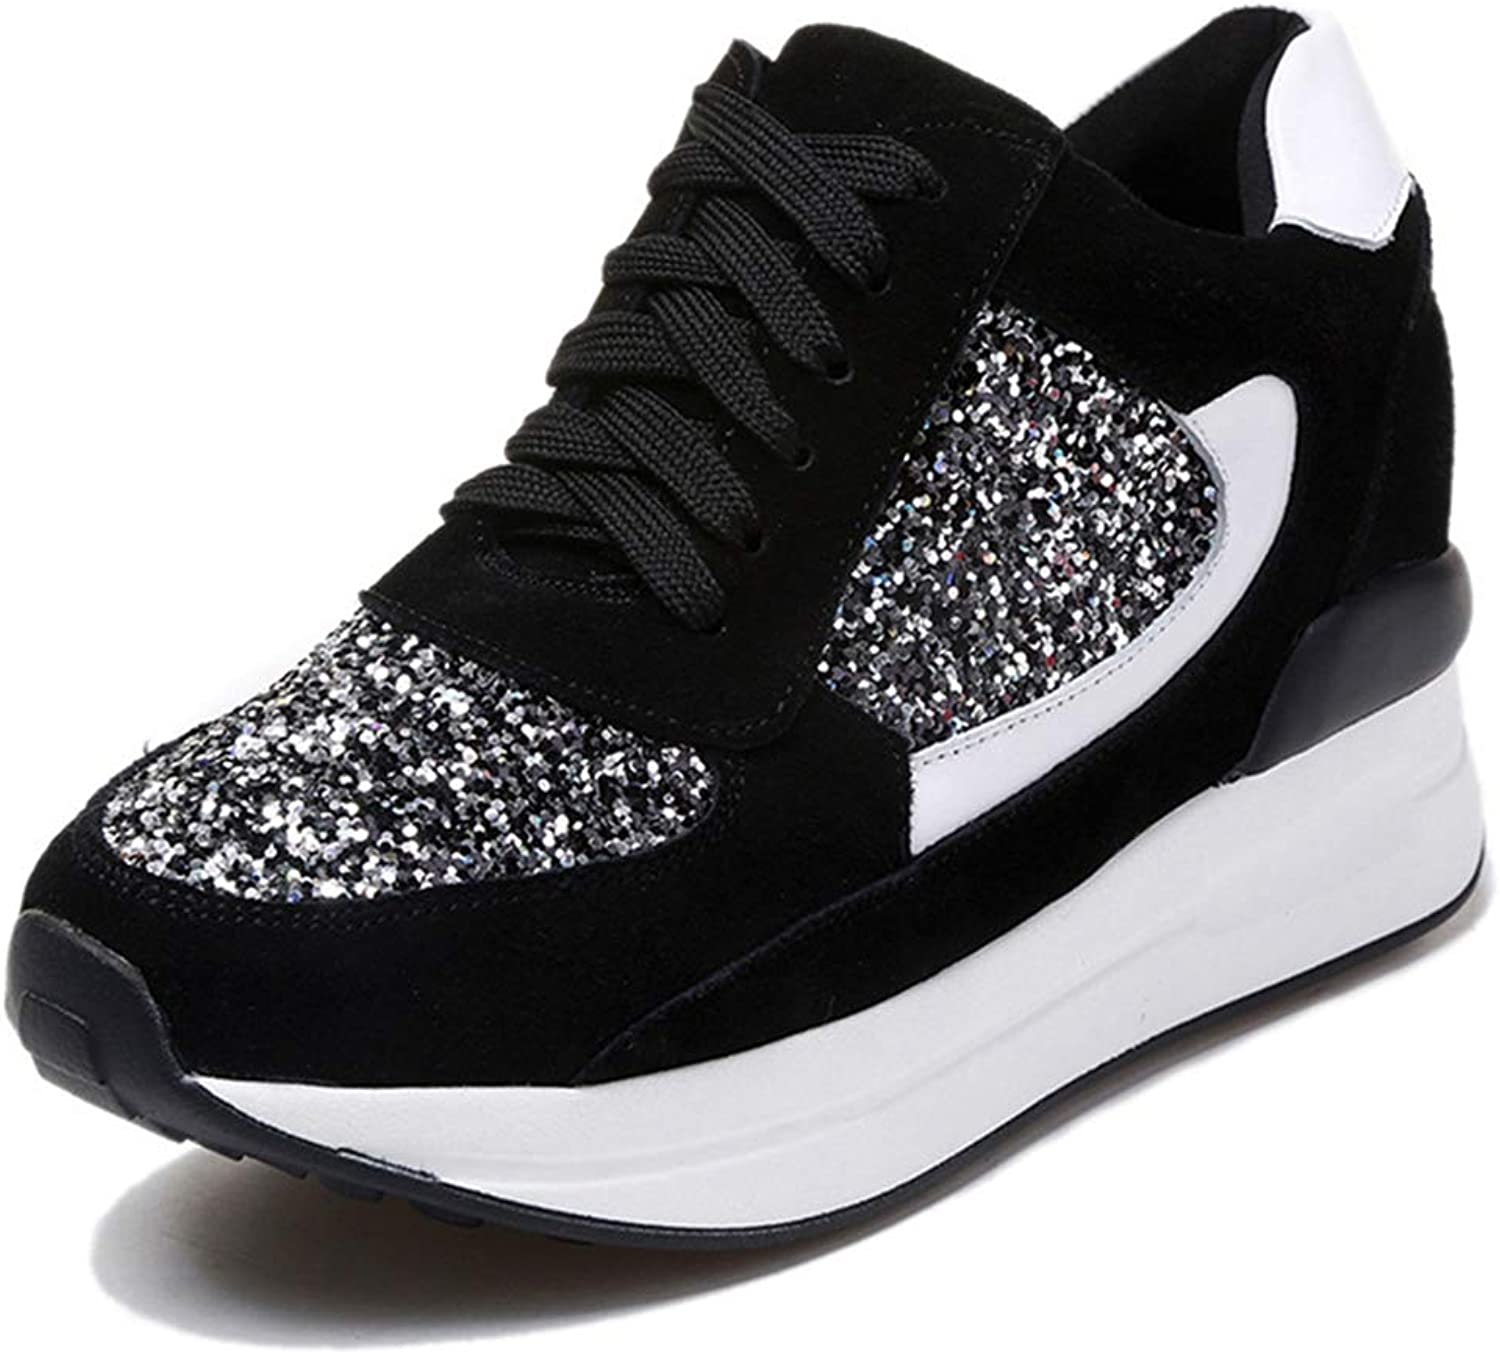 Hoxekle Summer Women Sneakers Platform Wedges shoes Woman Trainers Bling Lace-up Increase Height Black Casual shoes